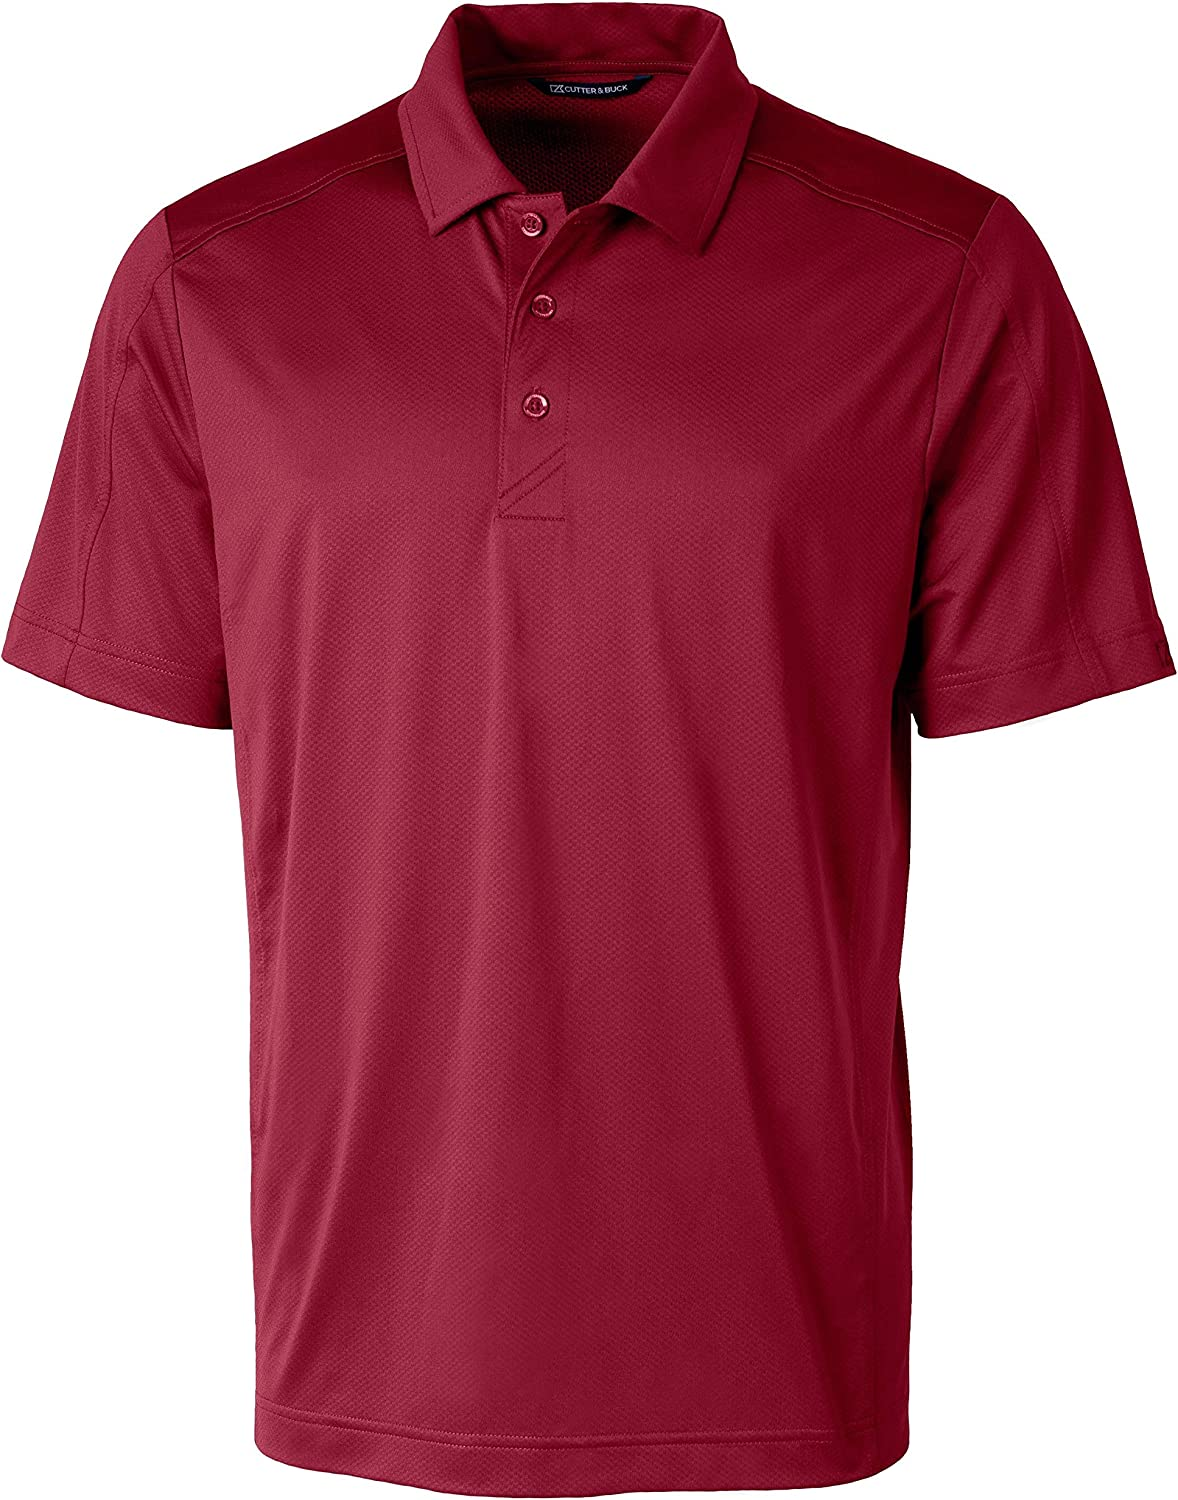 Cutter Buck Manufacturer OFFicial shop Men's Polo In a popularity